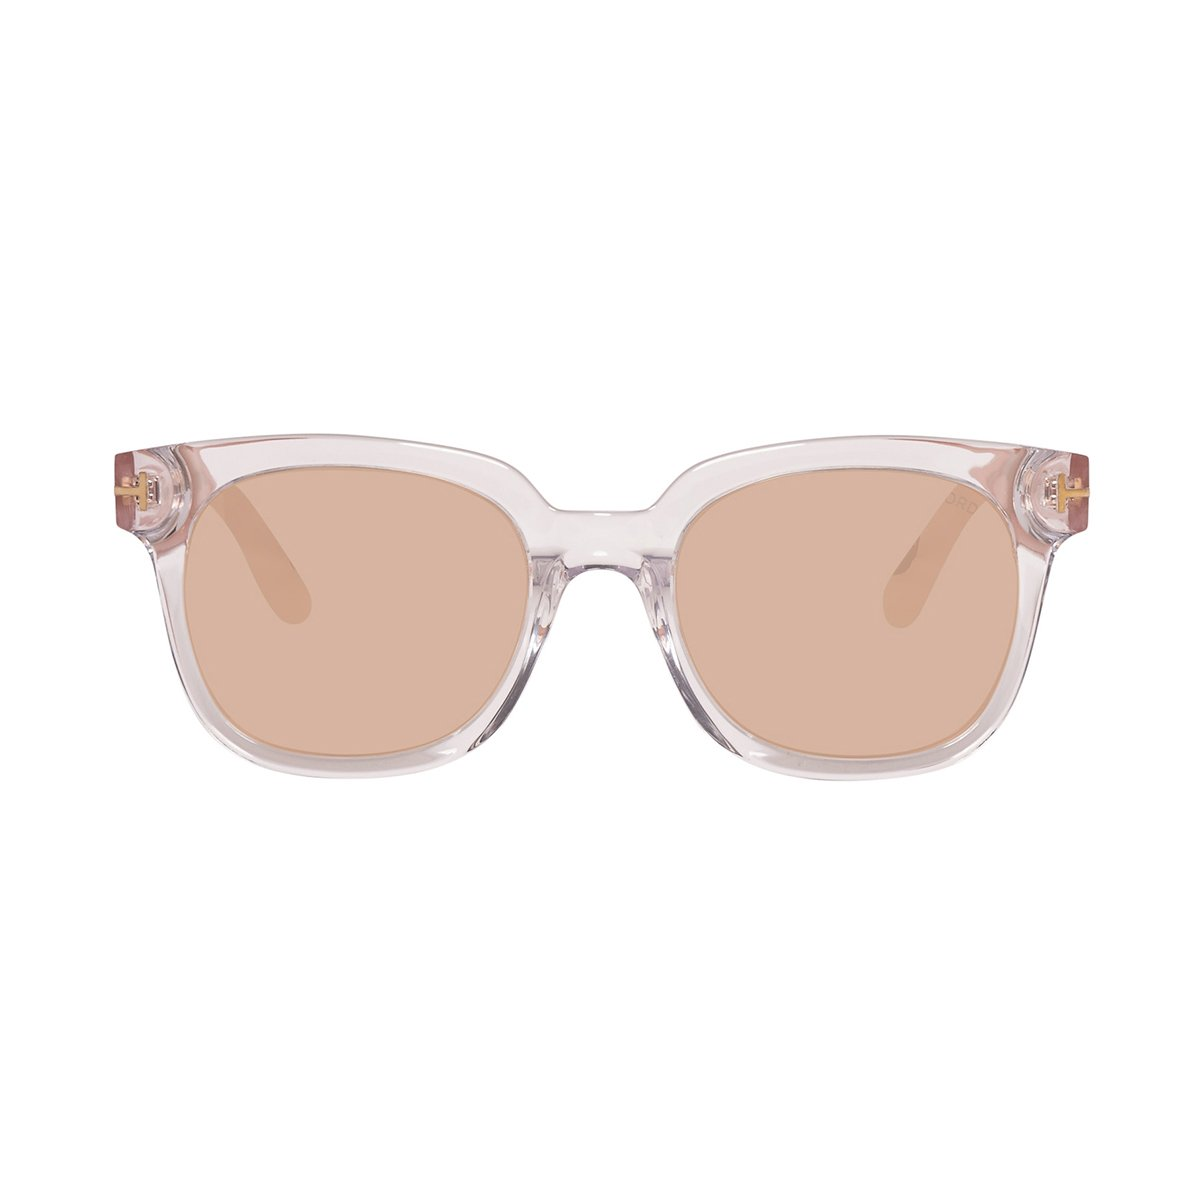 449f6fa9a Tom Ford FT0407 26C 54 Unisex Mirrored Sunglasses - MIMO DEALS